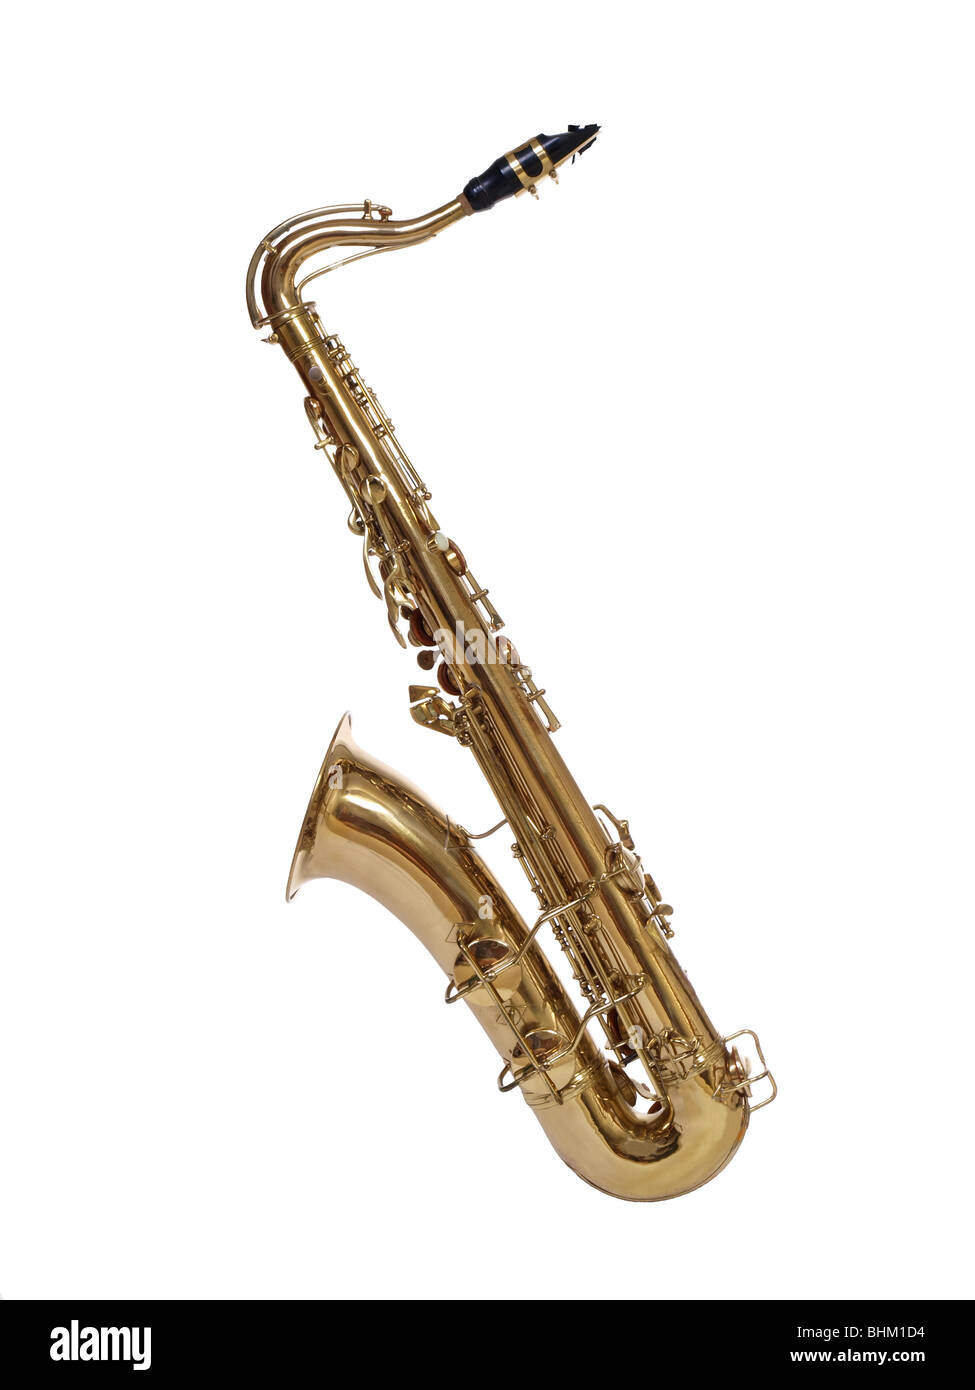 Vintage saxophone, carefully preserved, from the 1930's. - Stock Image